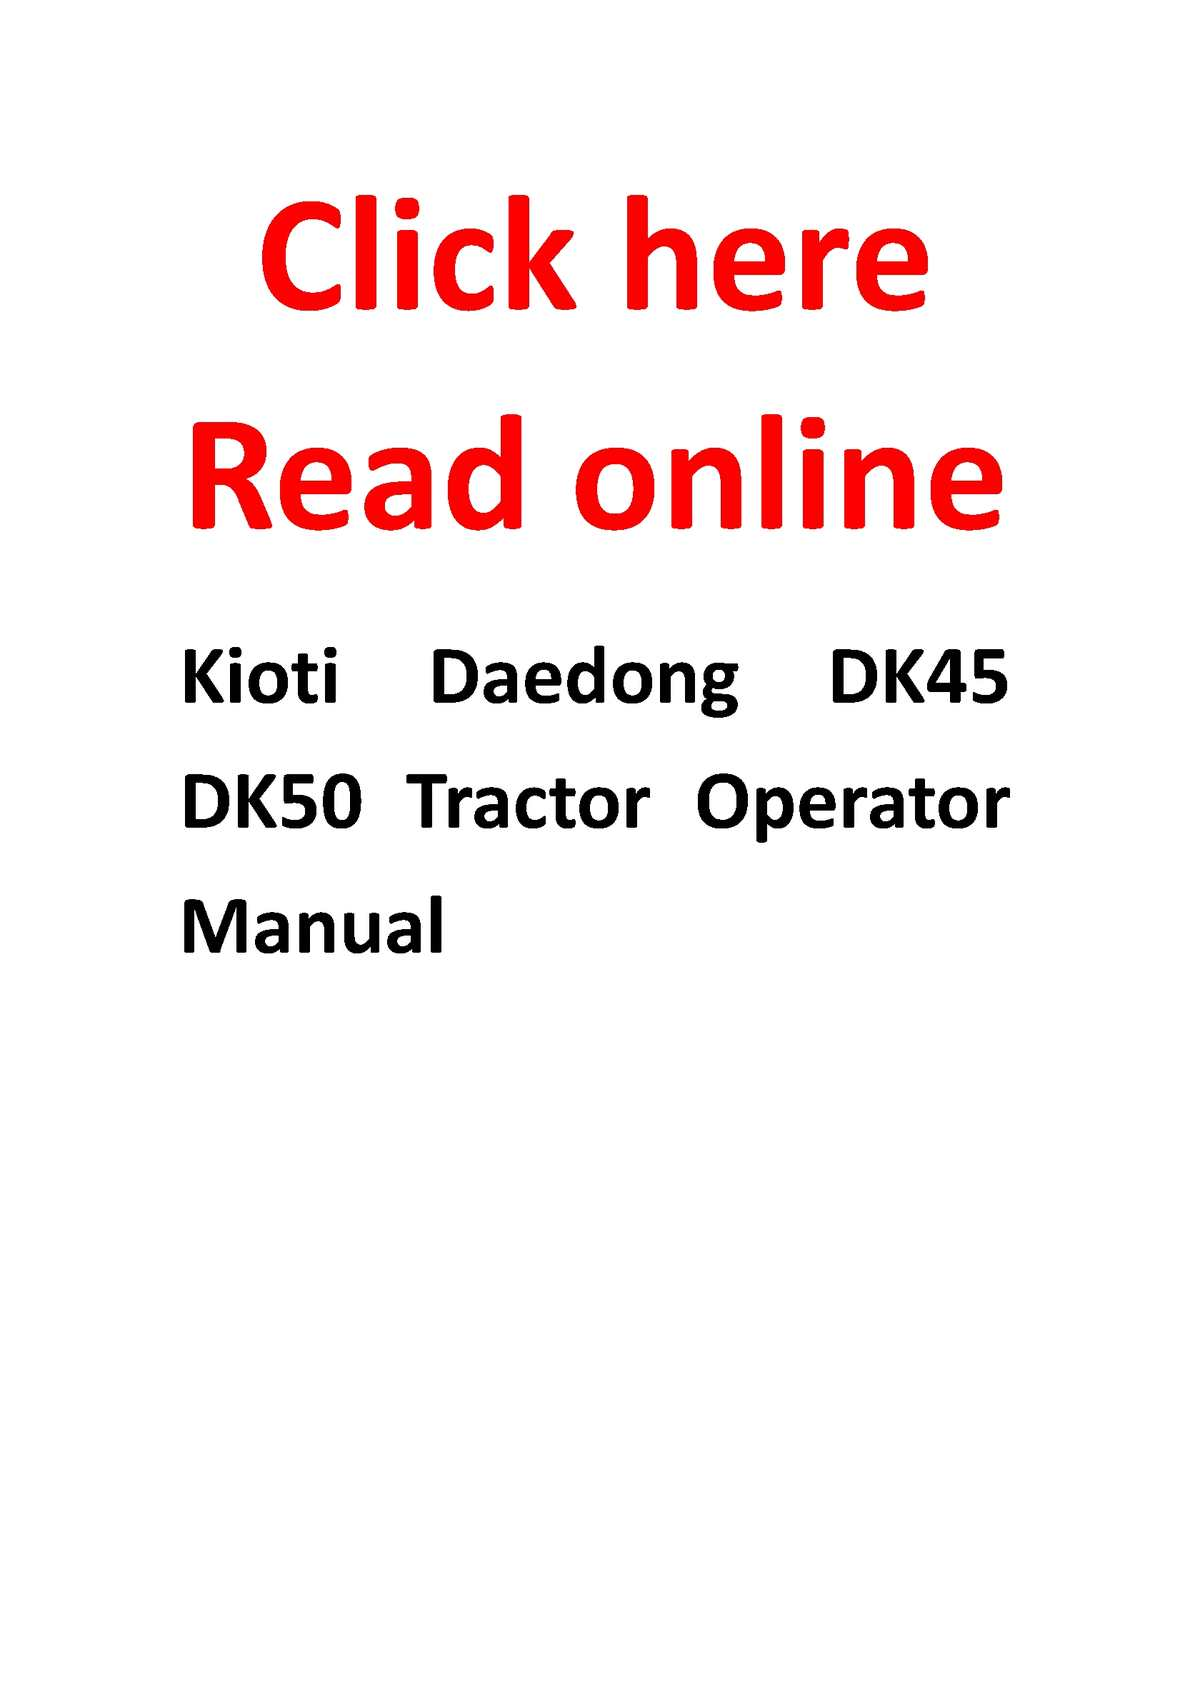 p1 calam�o kioti daedong dk45 dk50 tractor operator manual DK 45 Kioti Specs at eliteediting.co